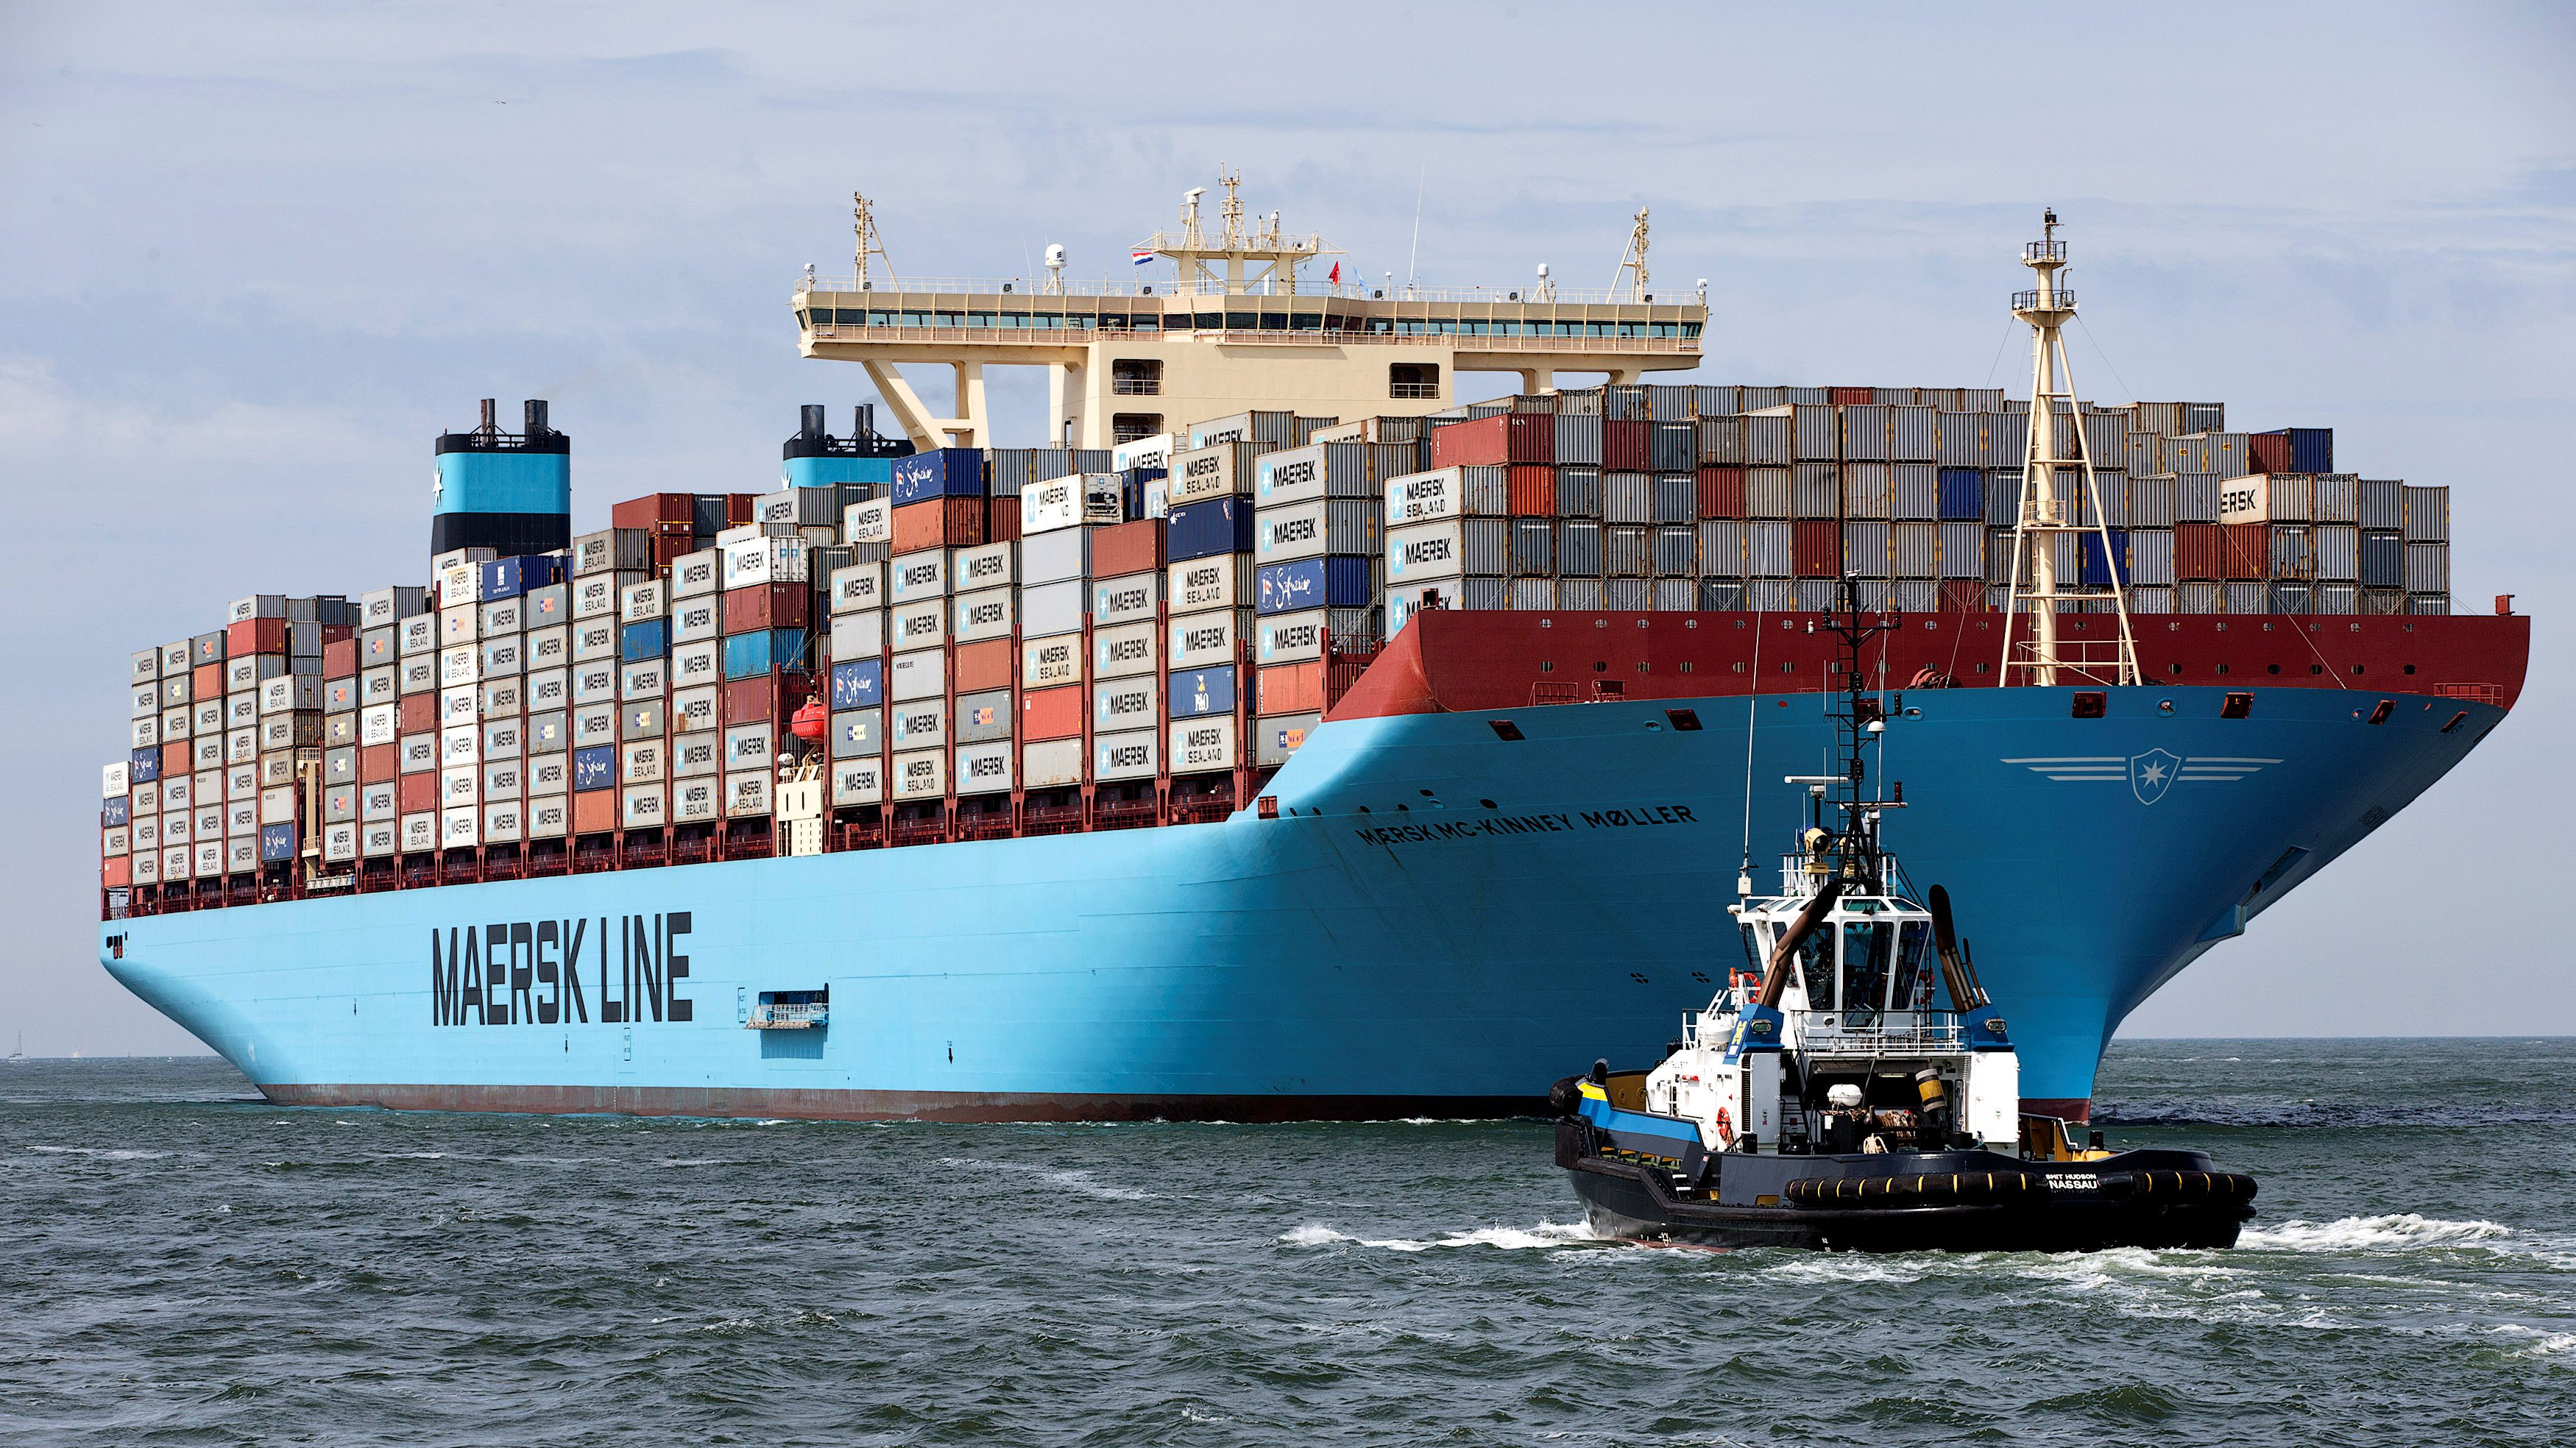 alibaba  baba  and maersk partner to sell container ship